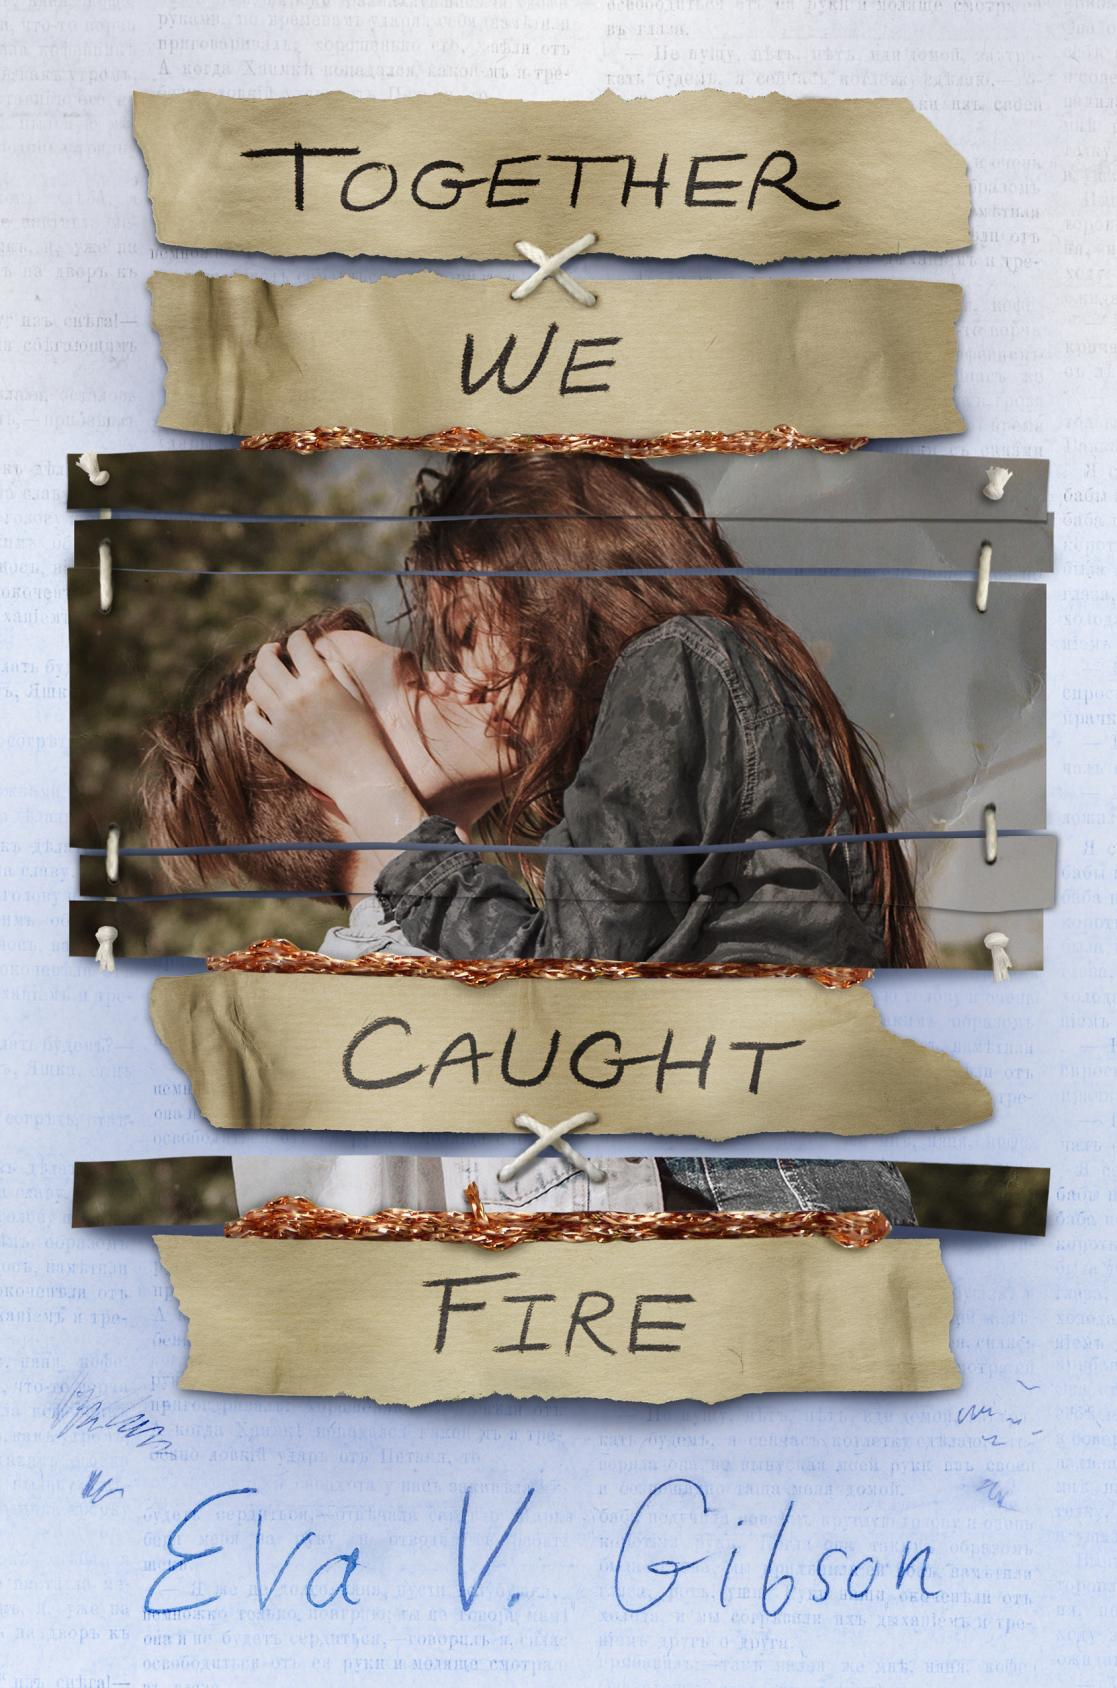 Together we caught fire  by Gibson, Eva